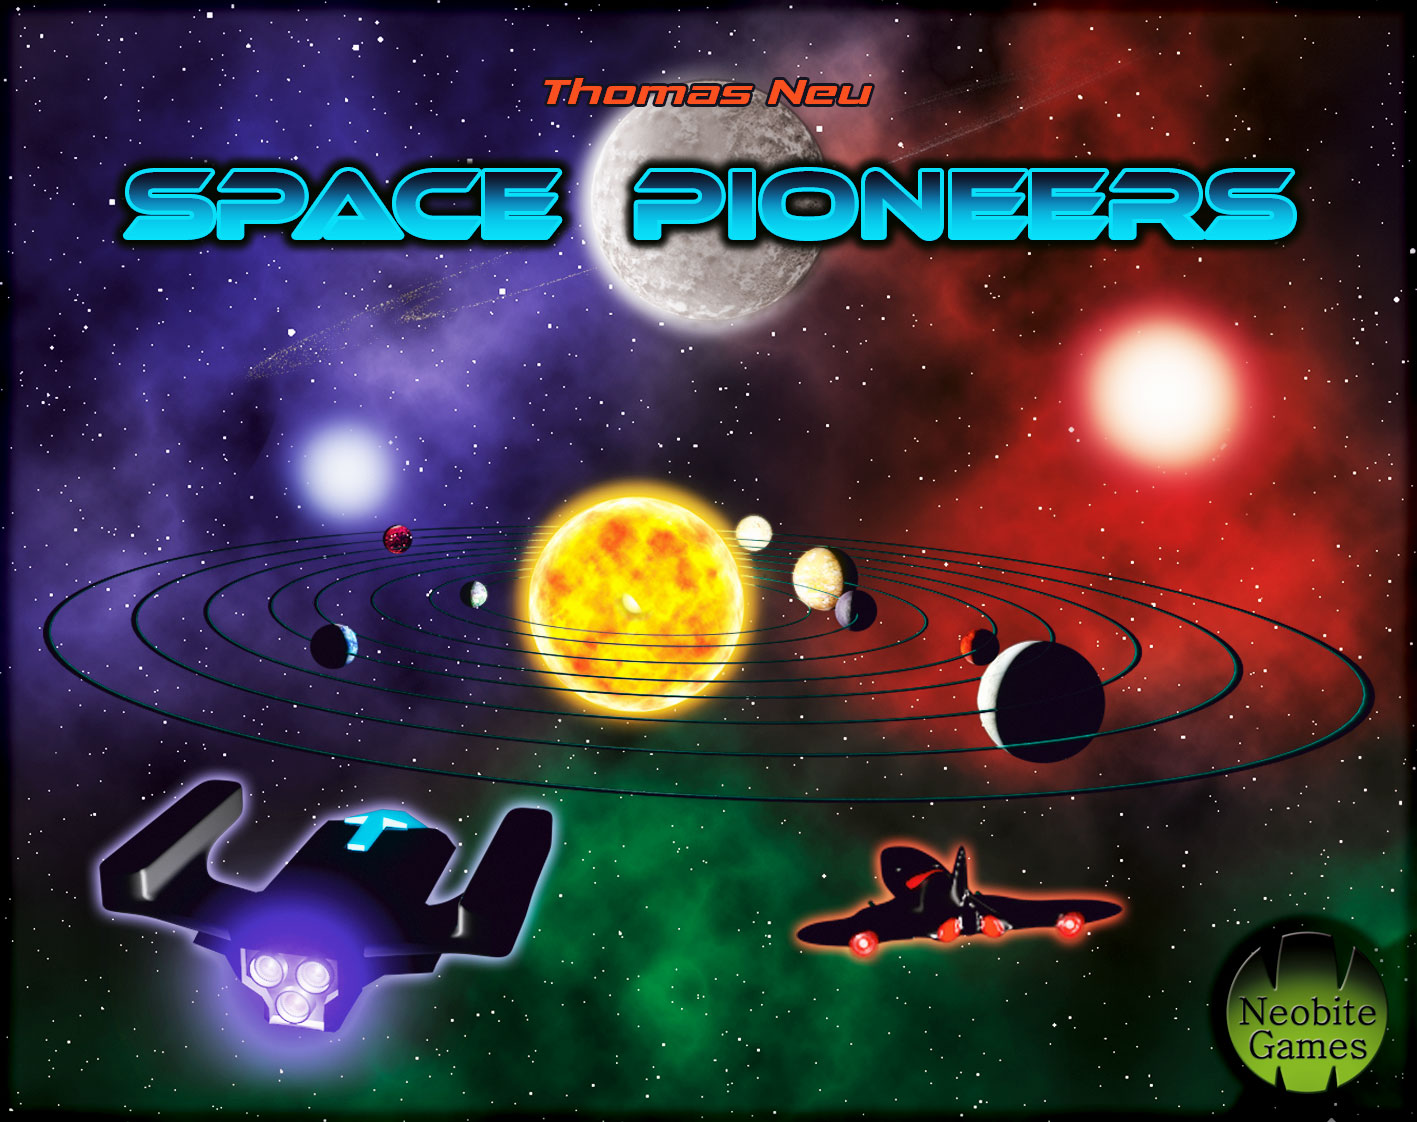 Spacepioneers